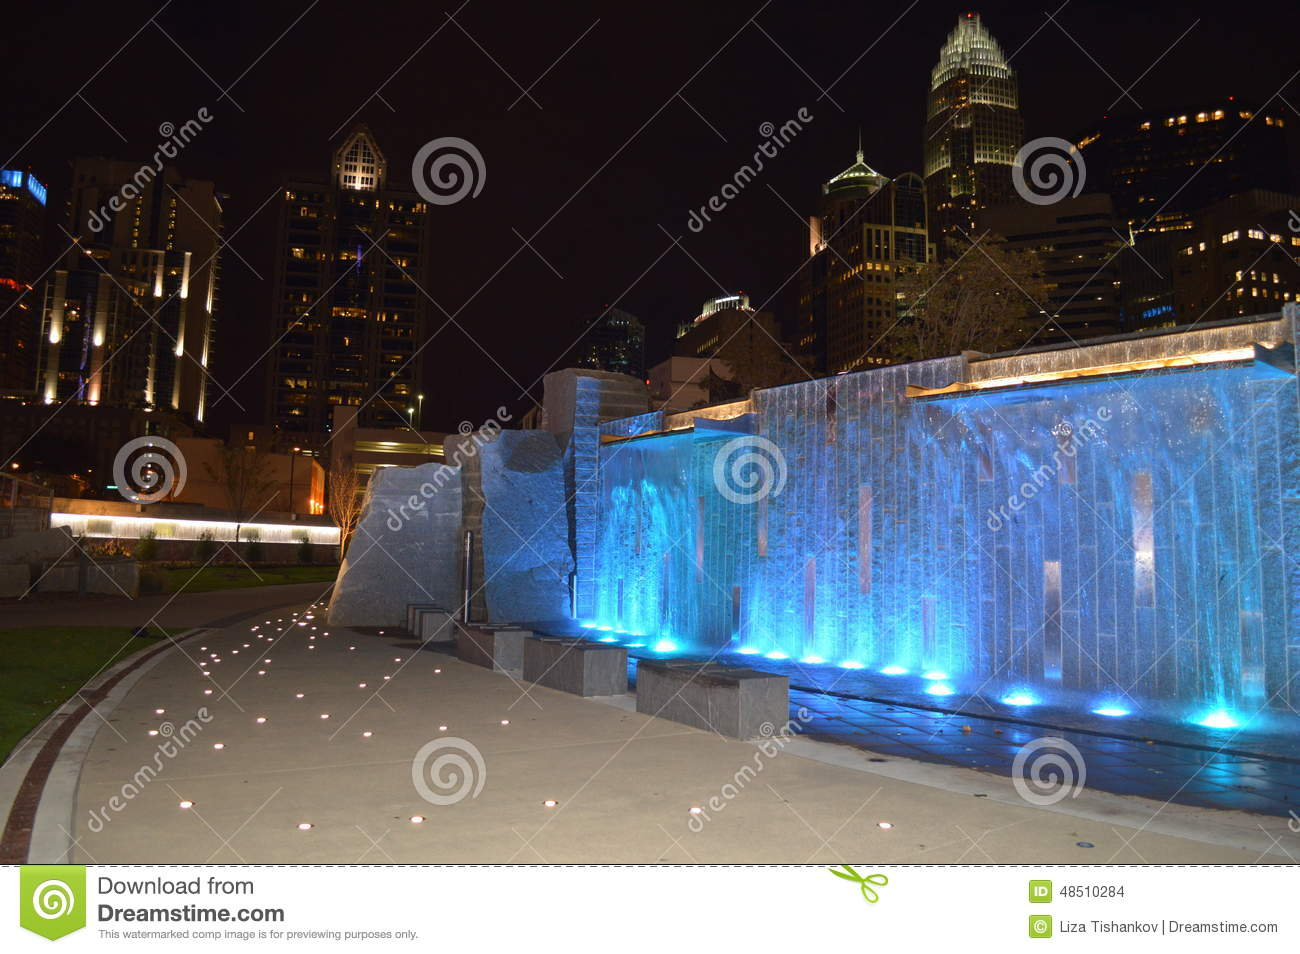 Water fountains charlotte nc - Romare Bearden Park Stock Images